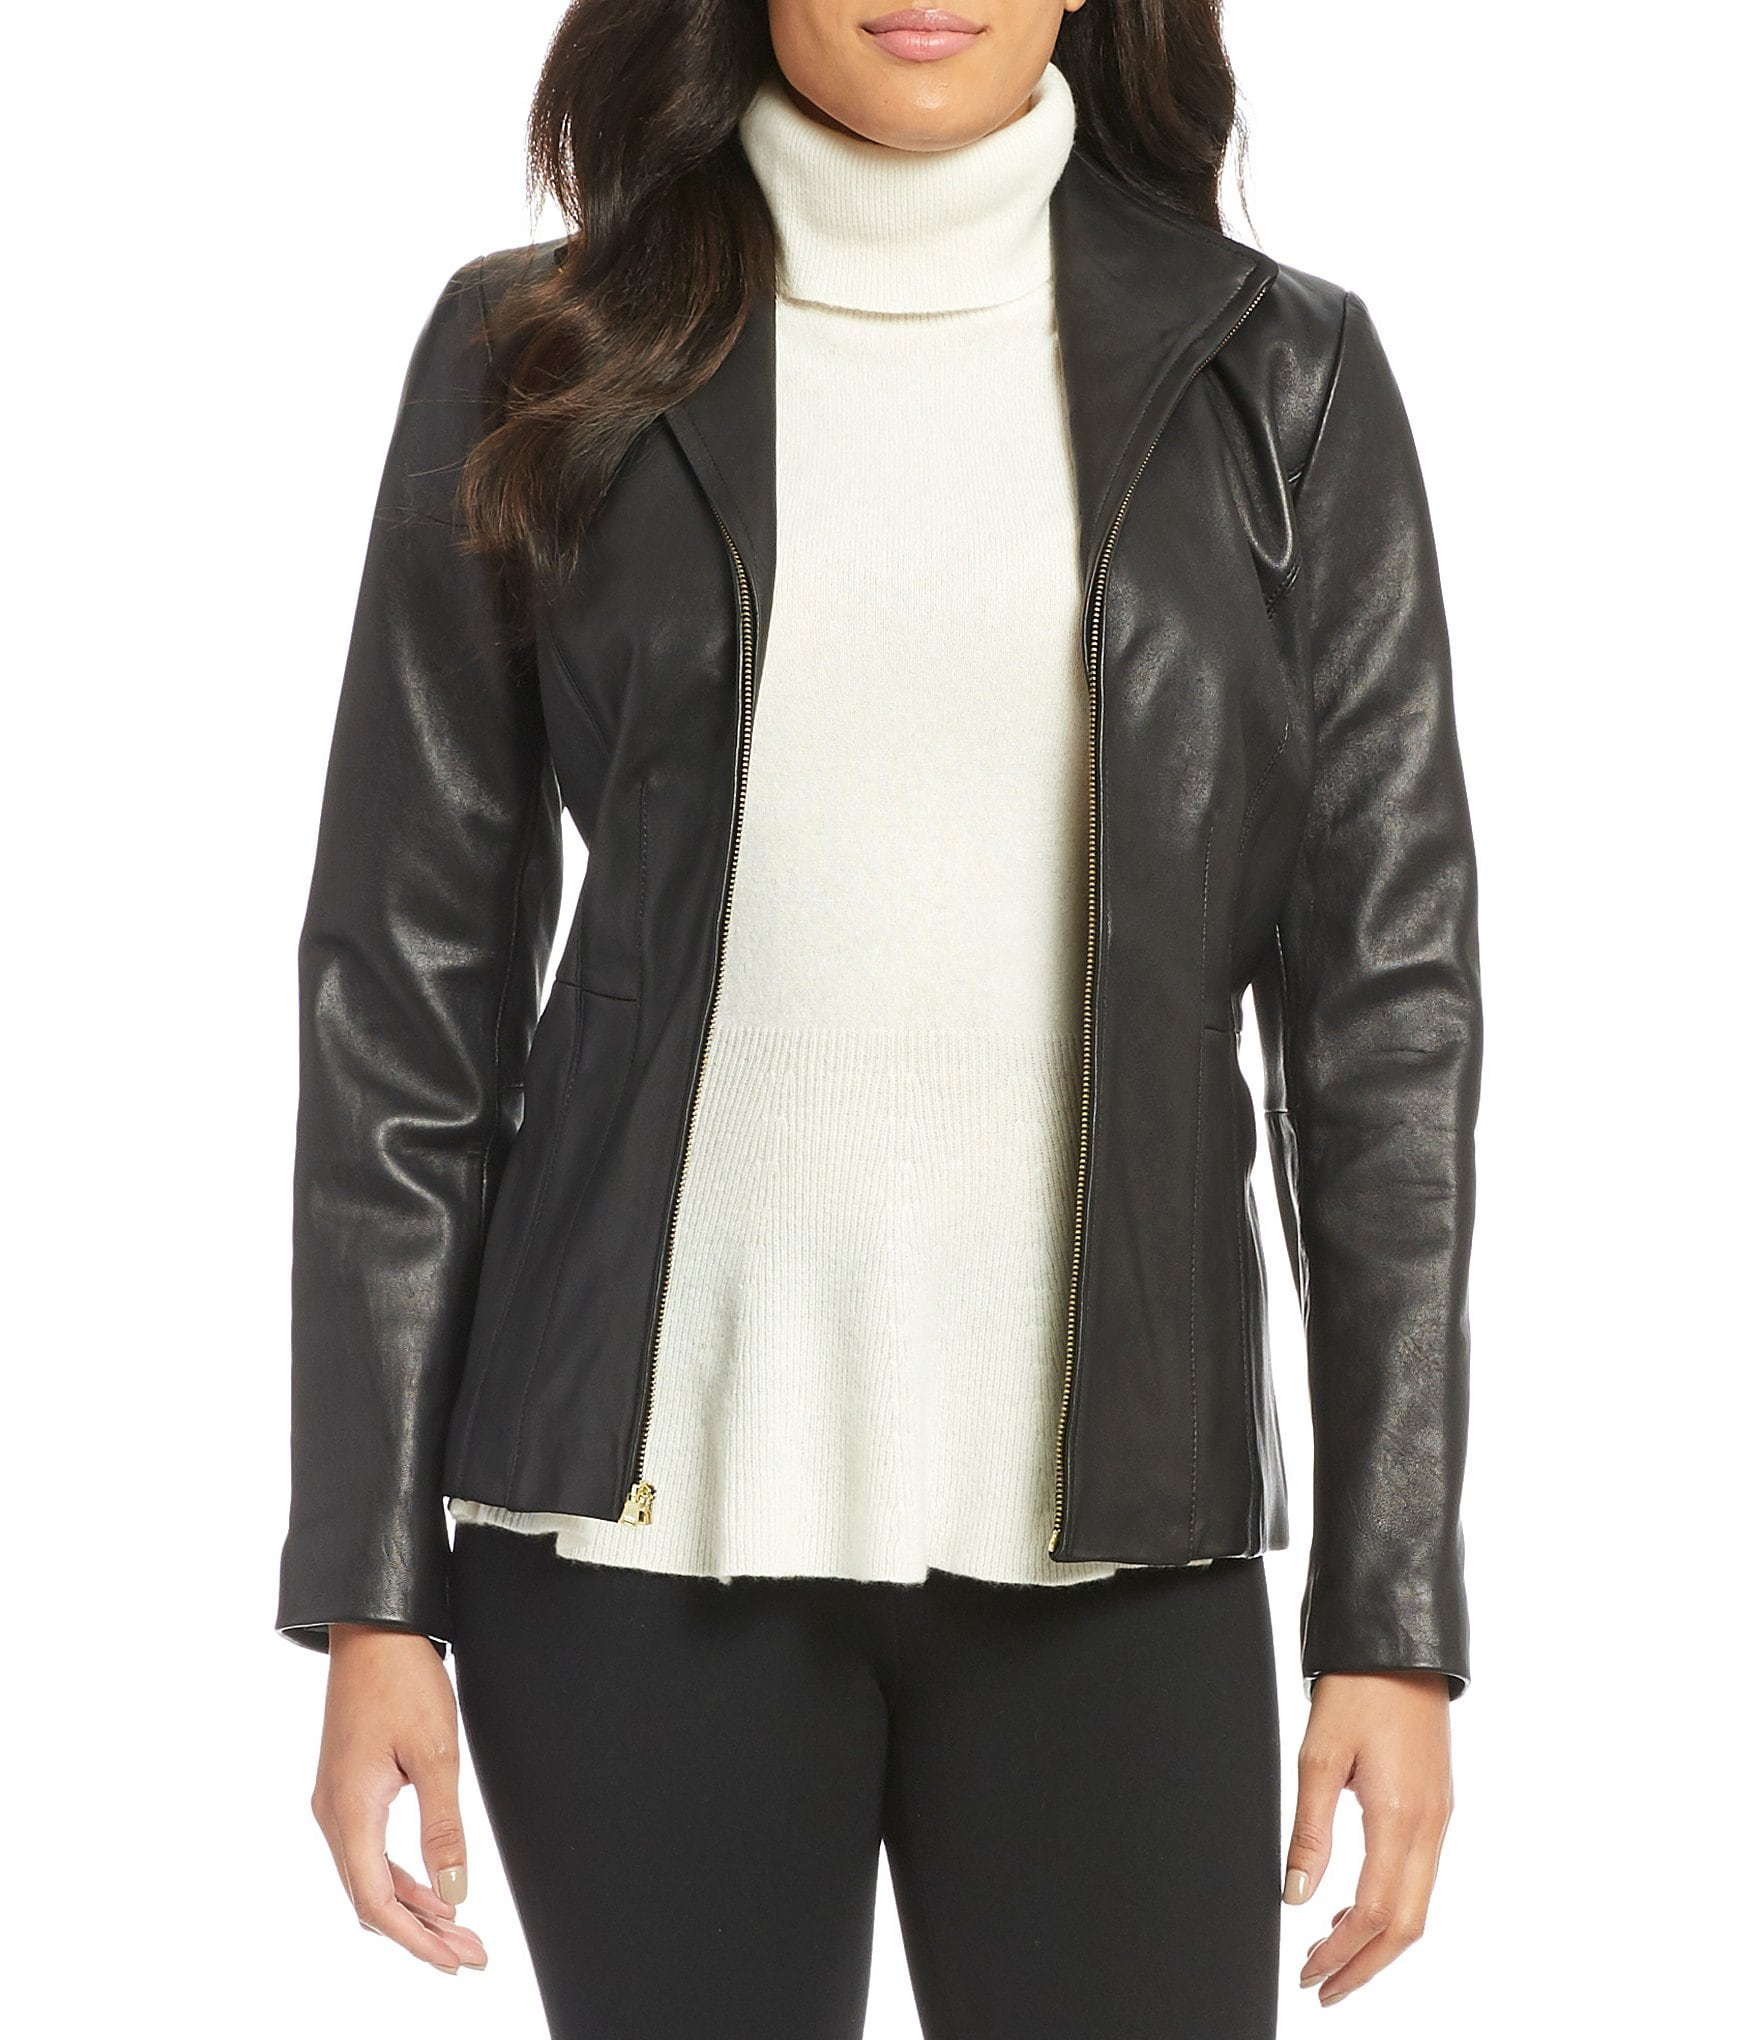 Womens Leather Faux Leather Coats Dillards